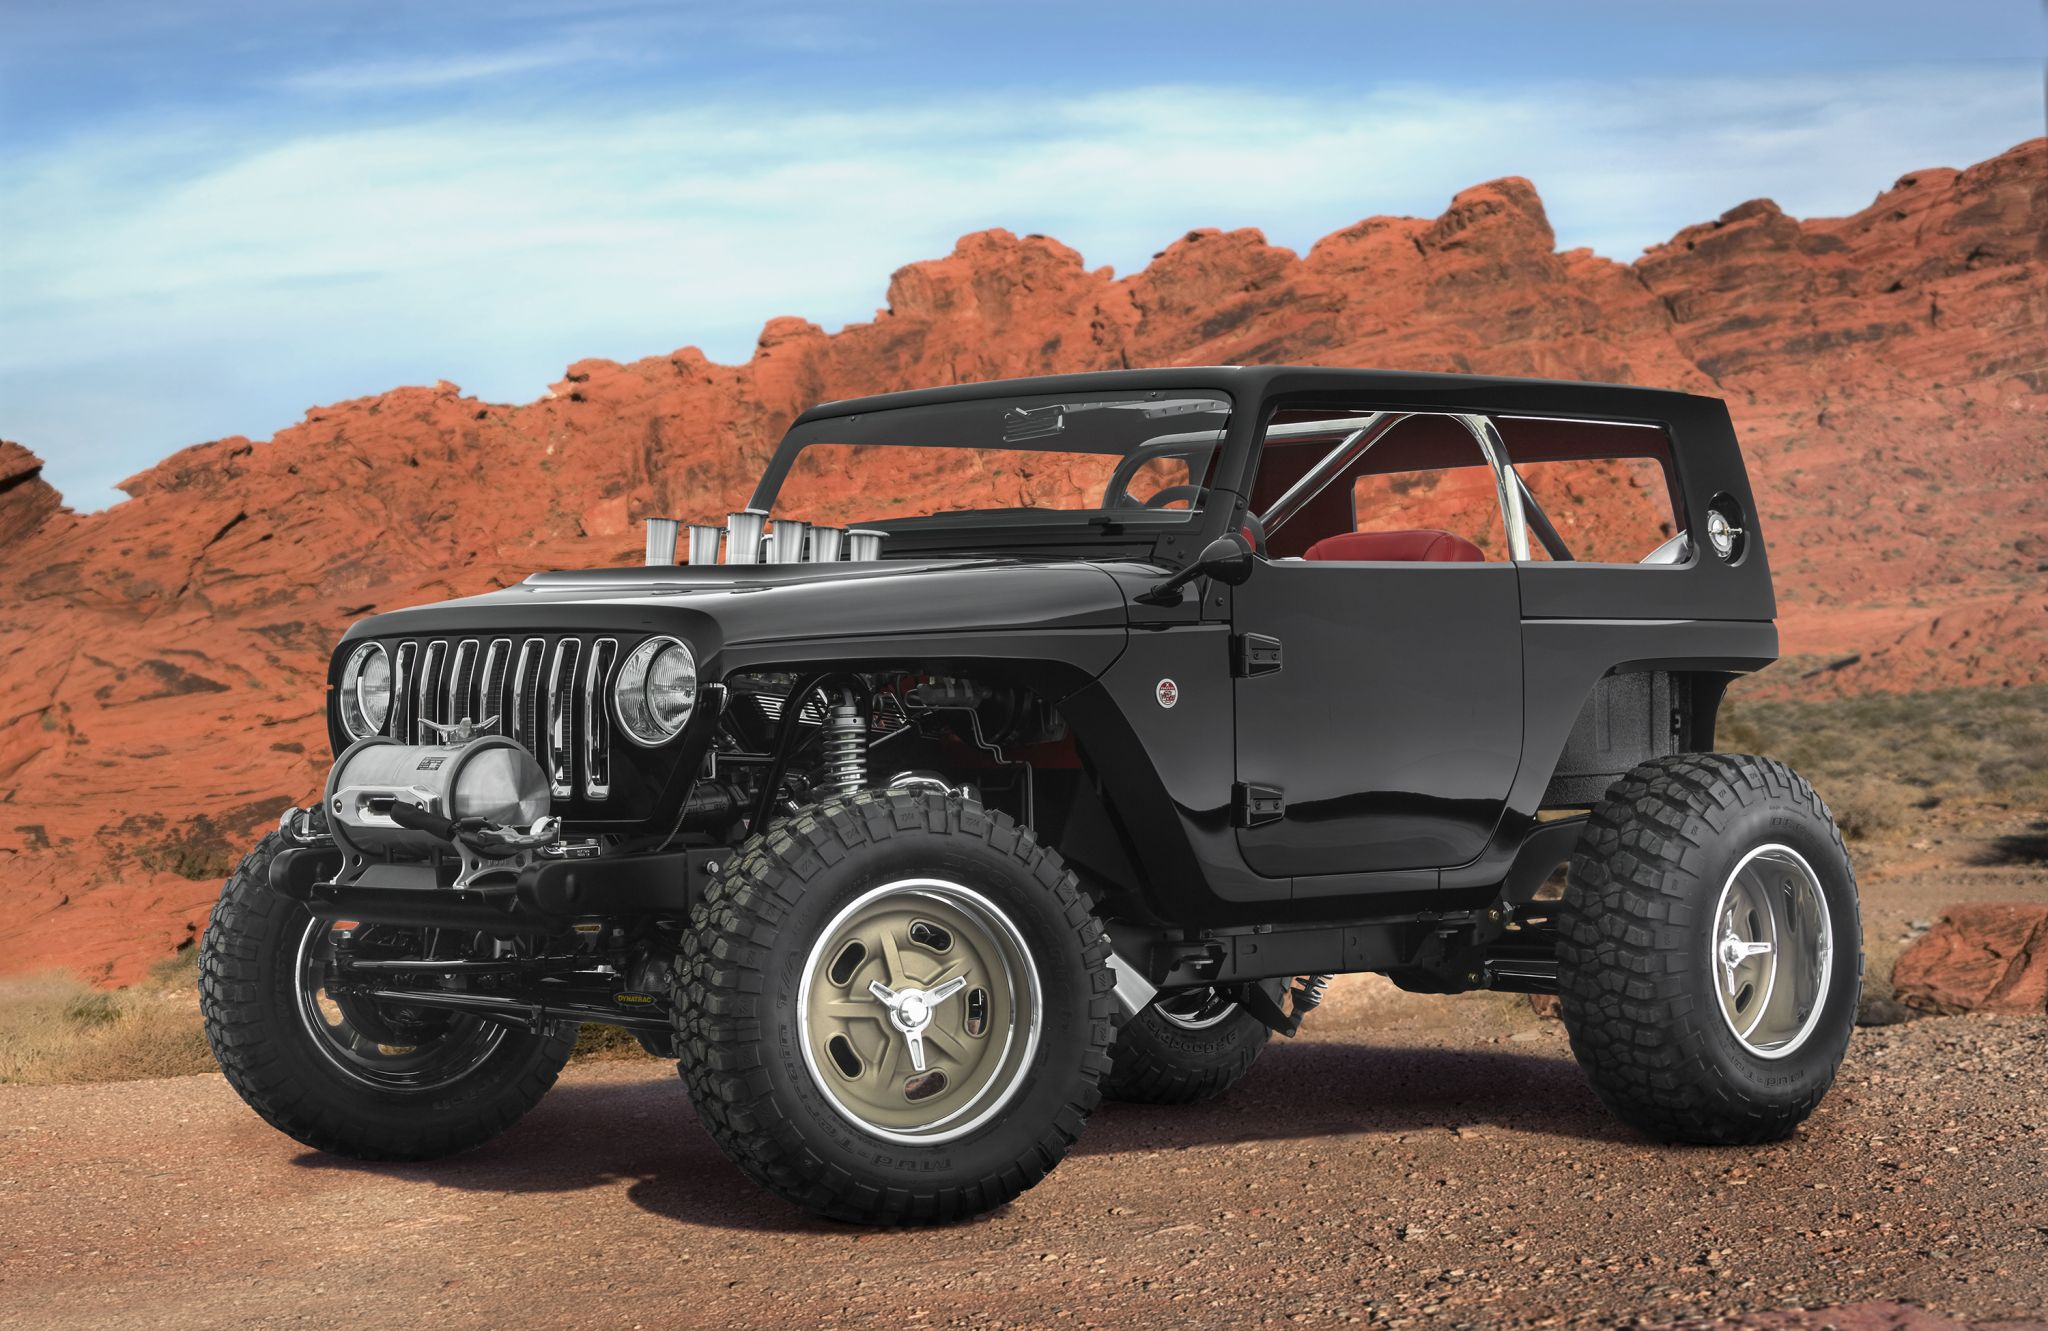 Jeep, Mopar show off 7 new concepts ahead of 51st Moab Easter Safari